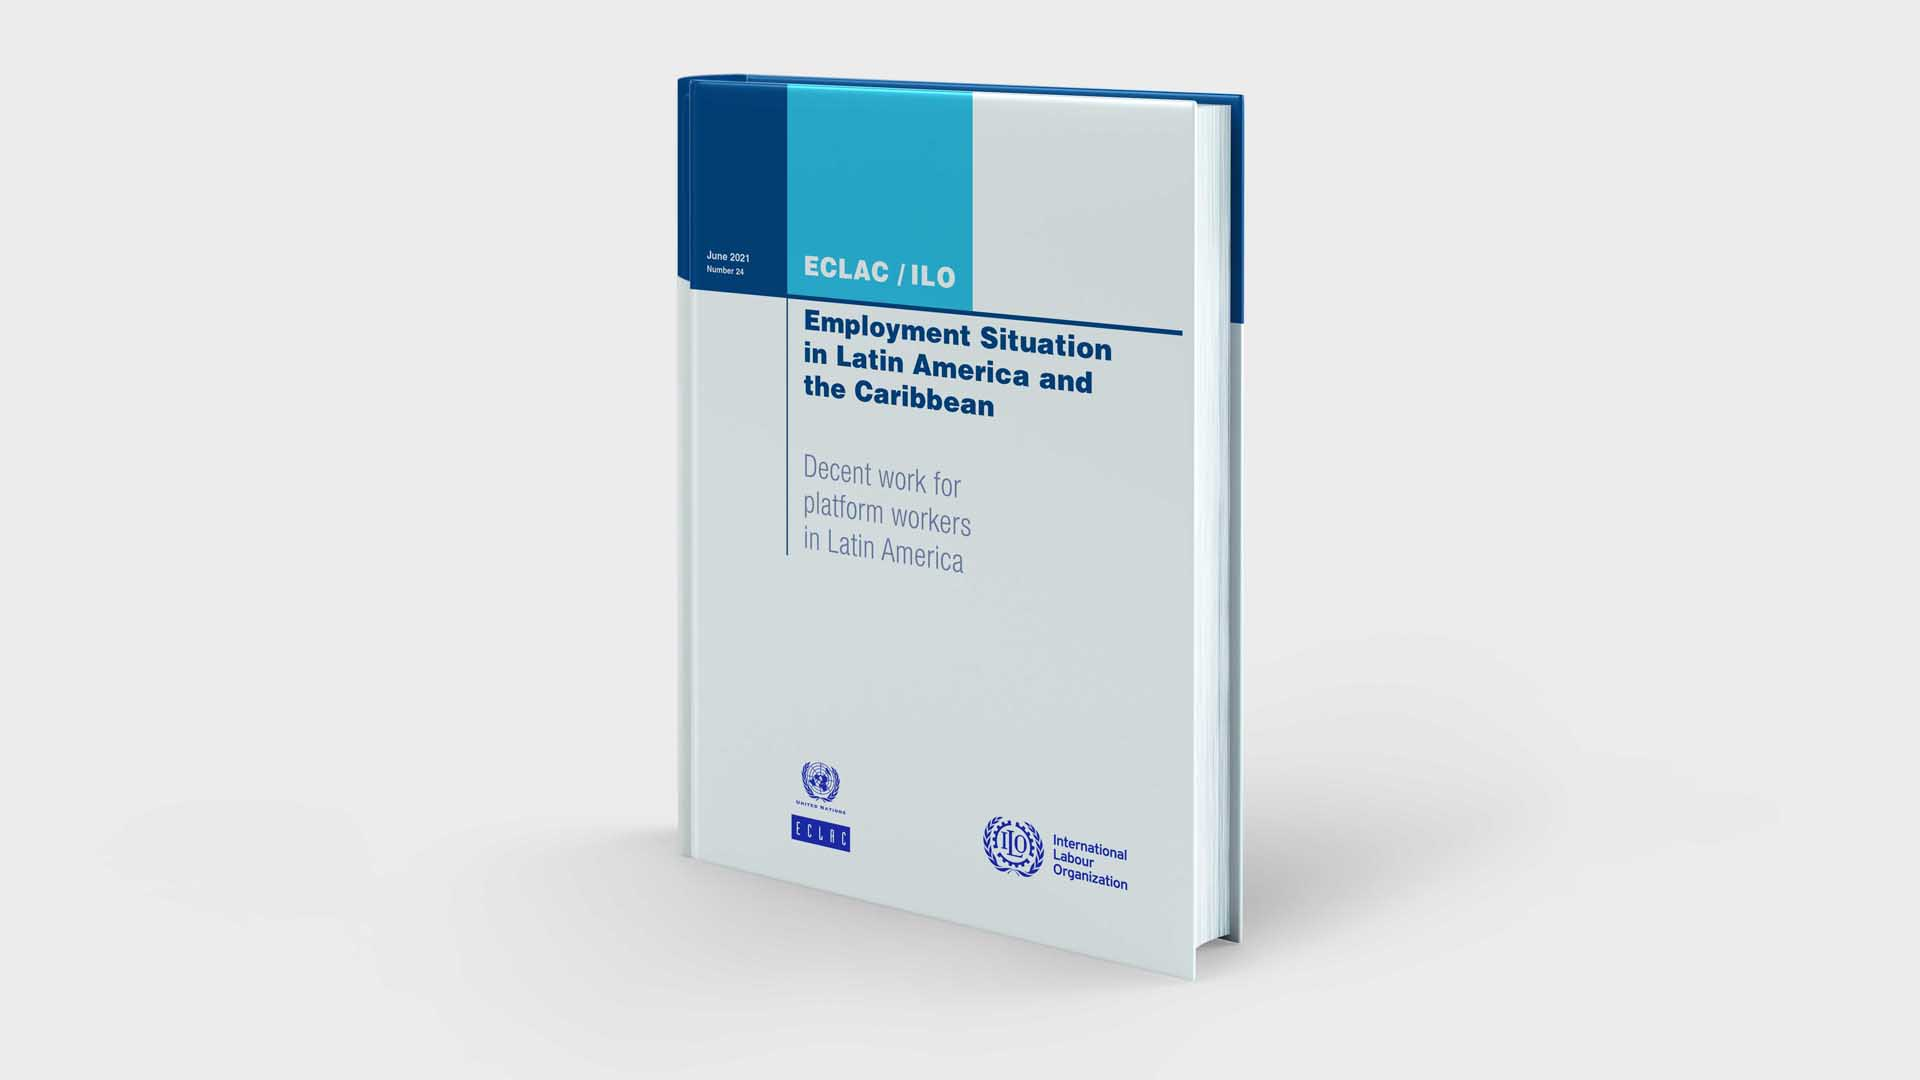 A new ECLAC-ILO joint publication warns that in order to reduce the high unemployment rates seen during the pandemic, significant efforts will be needed on employment policies aimed at the most vulnerable groups.